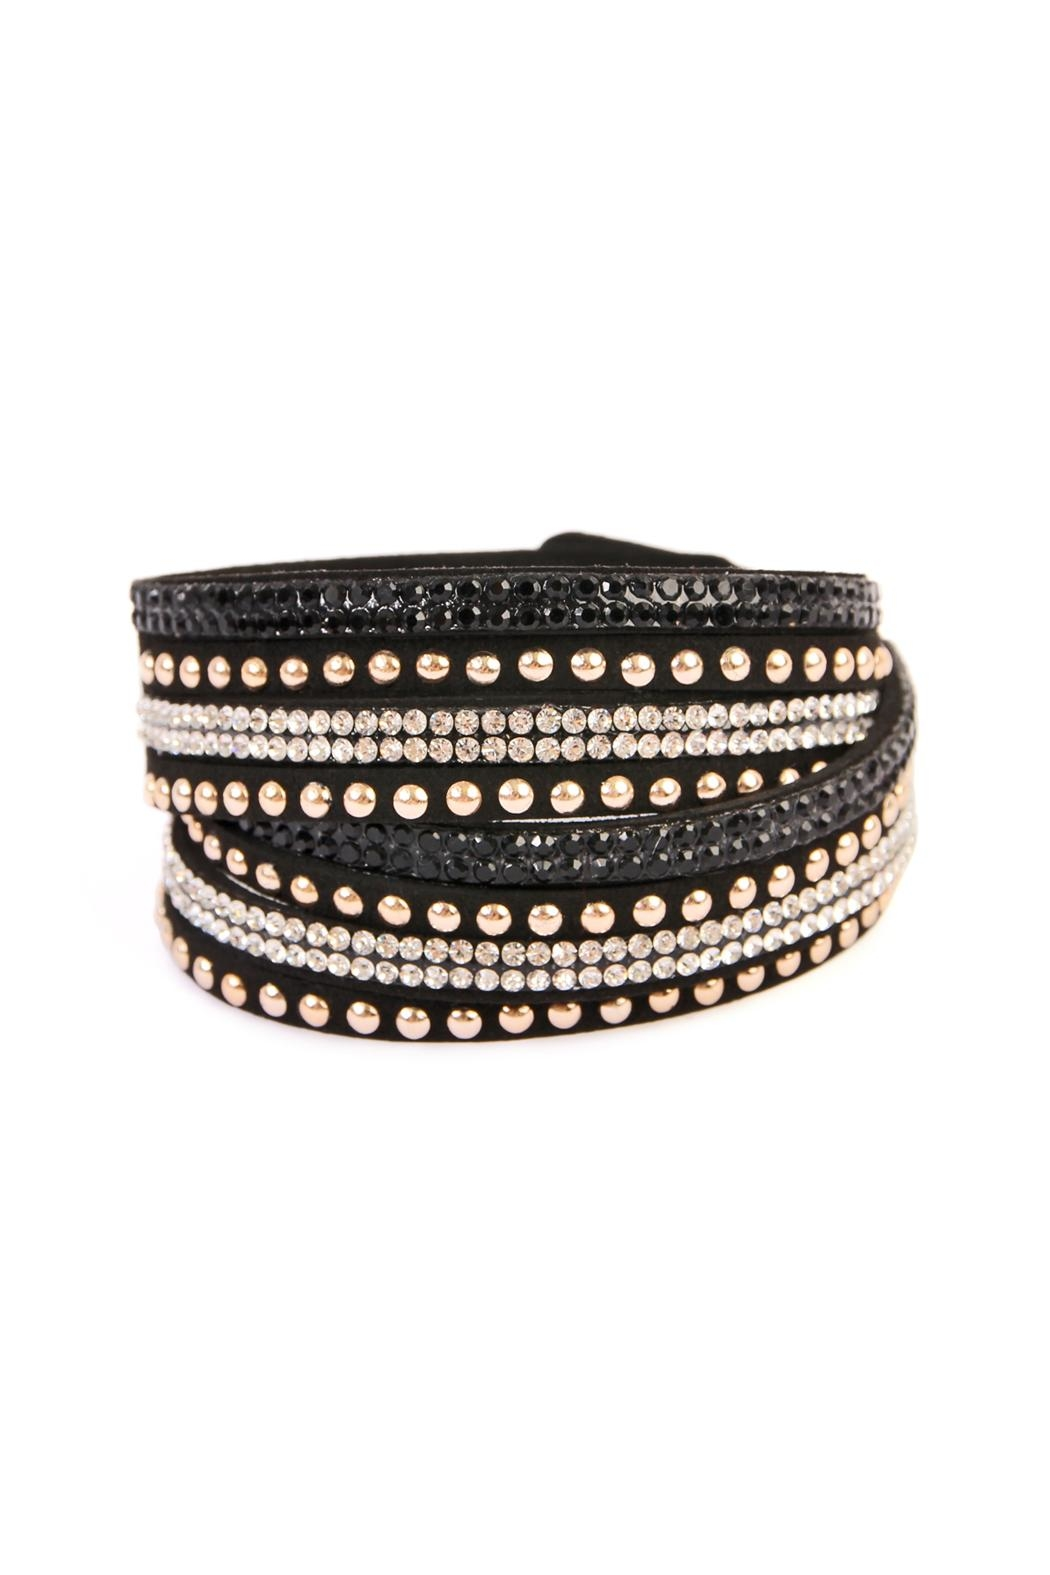 Riah Fashion Black Wrap Around Bracelet - Main Image